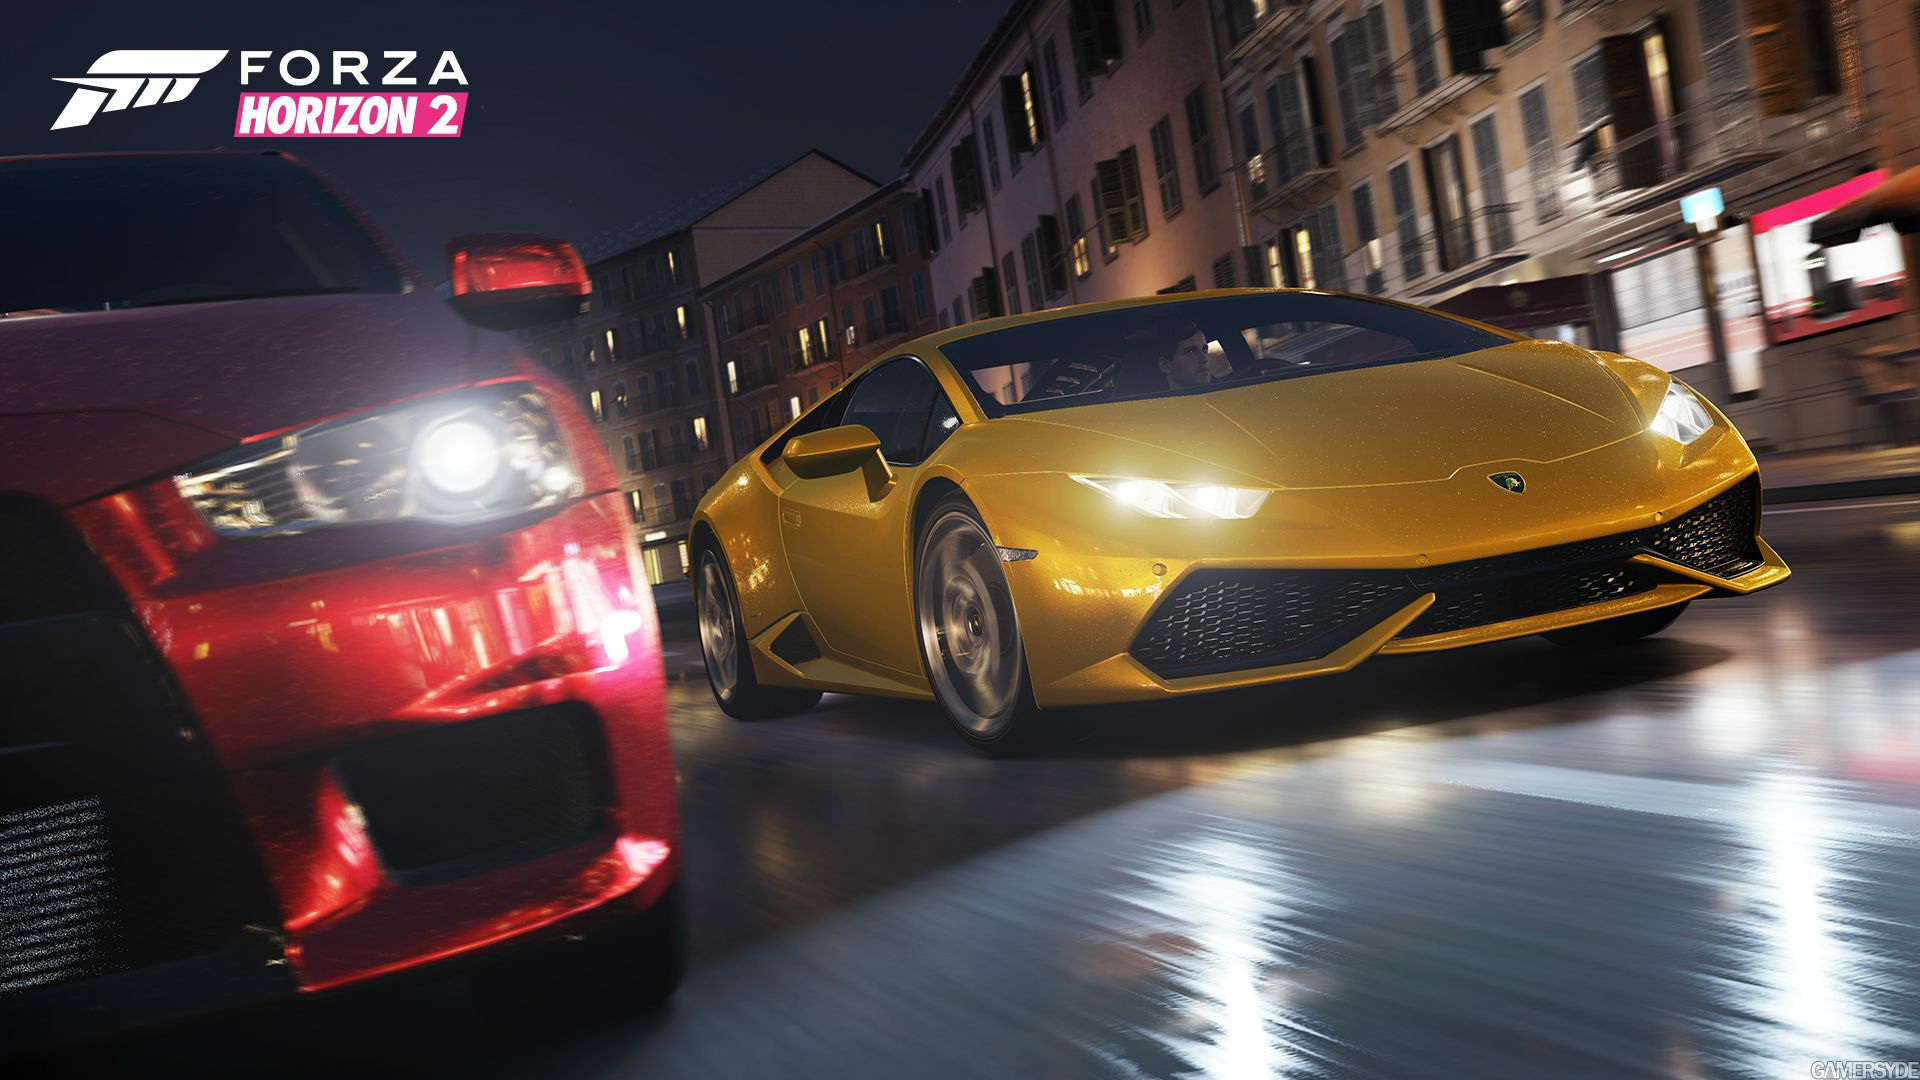 Best forza horizon 2 wallpapers